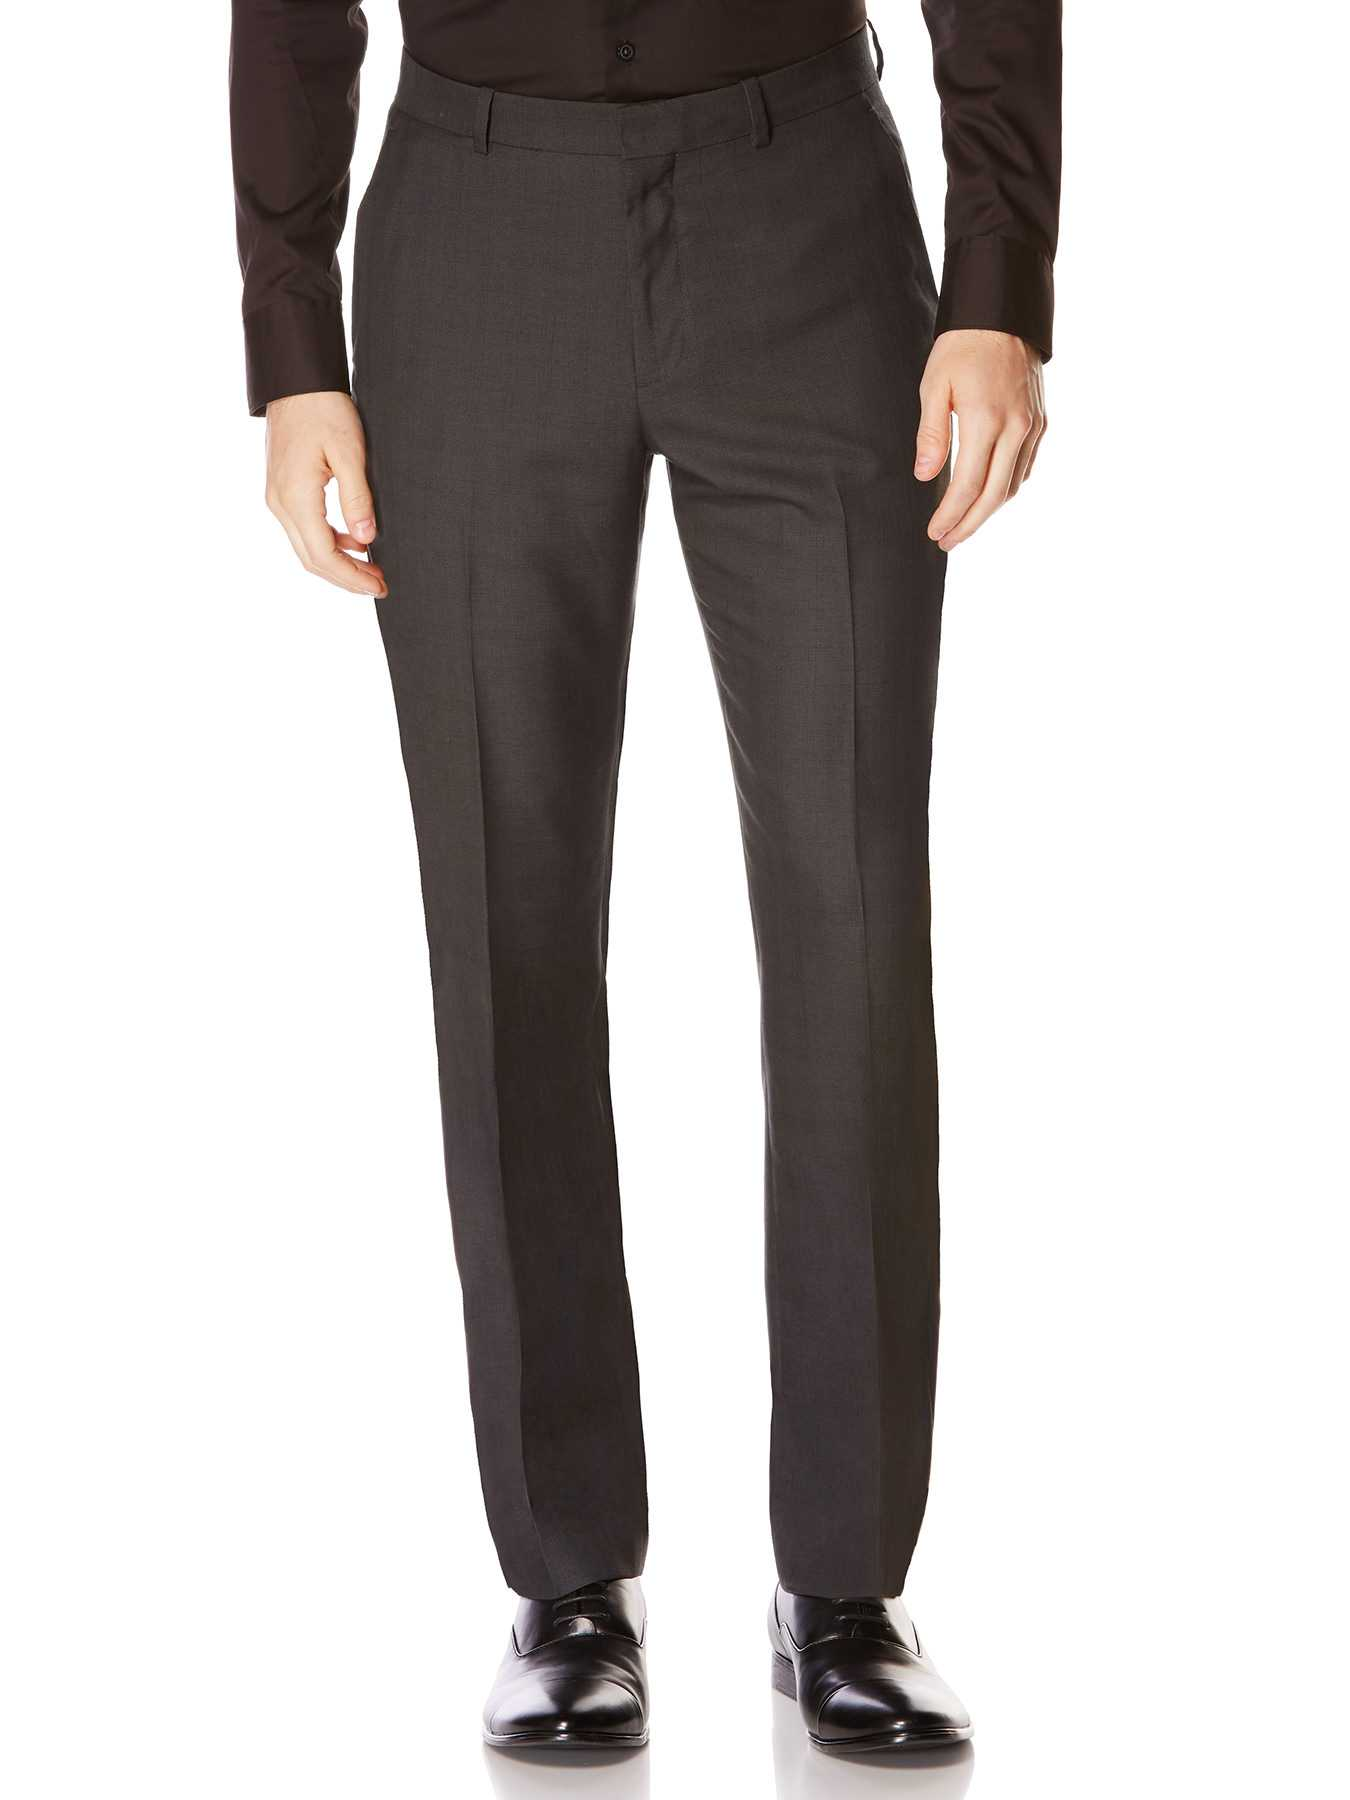 Perry Ellis Slim Fit Tonal Plaid Dress Pant